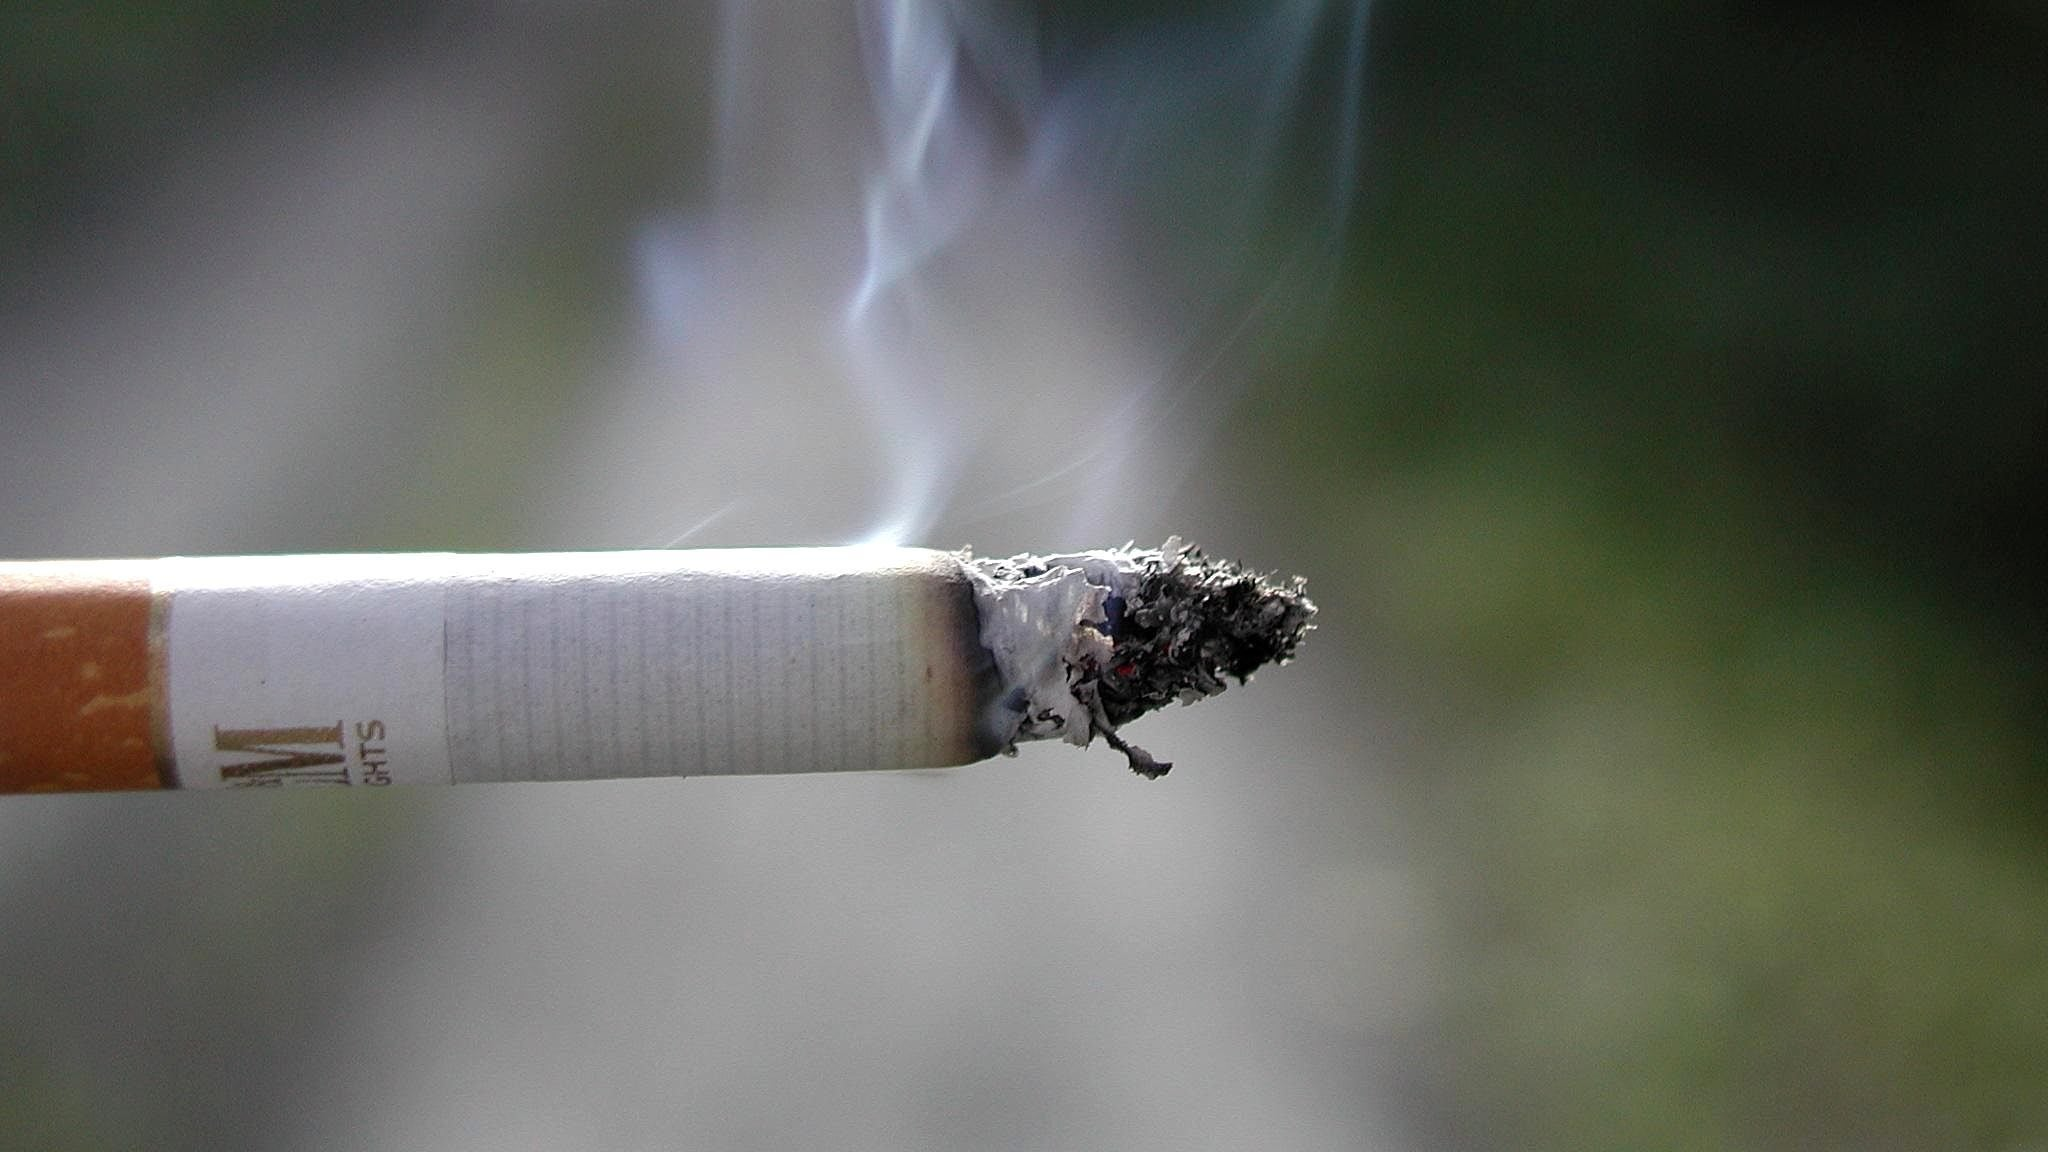 FDA Could Force US Companies To Reduce Nicotine In Cigarettes To Non-Addictive Levels